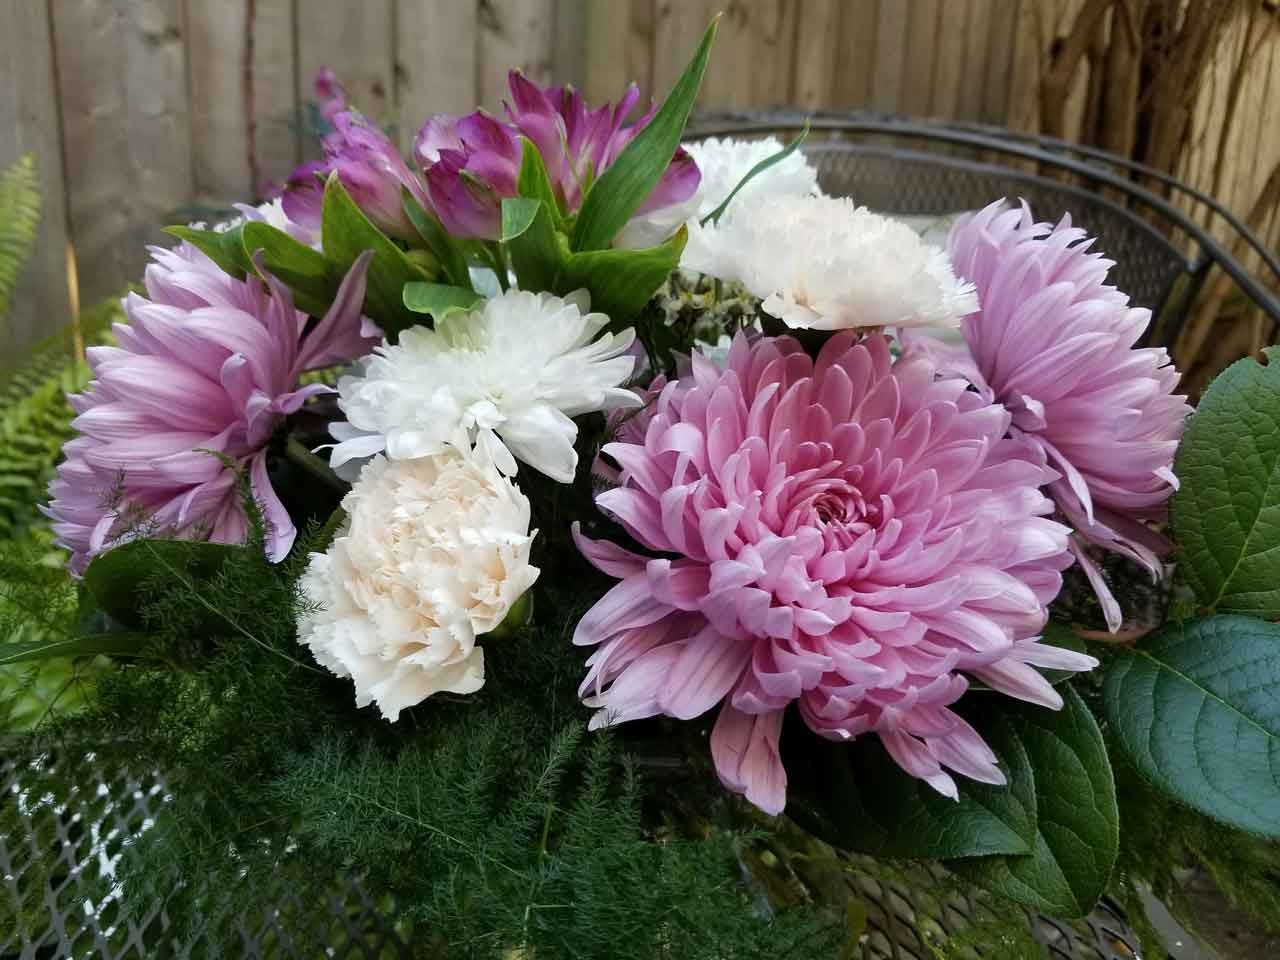 The Delicate Flower Floral Pink And Purple Arrangement